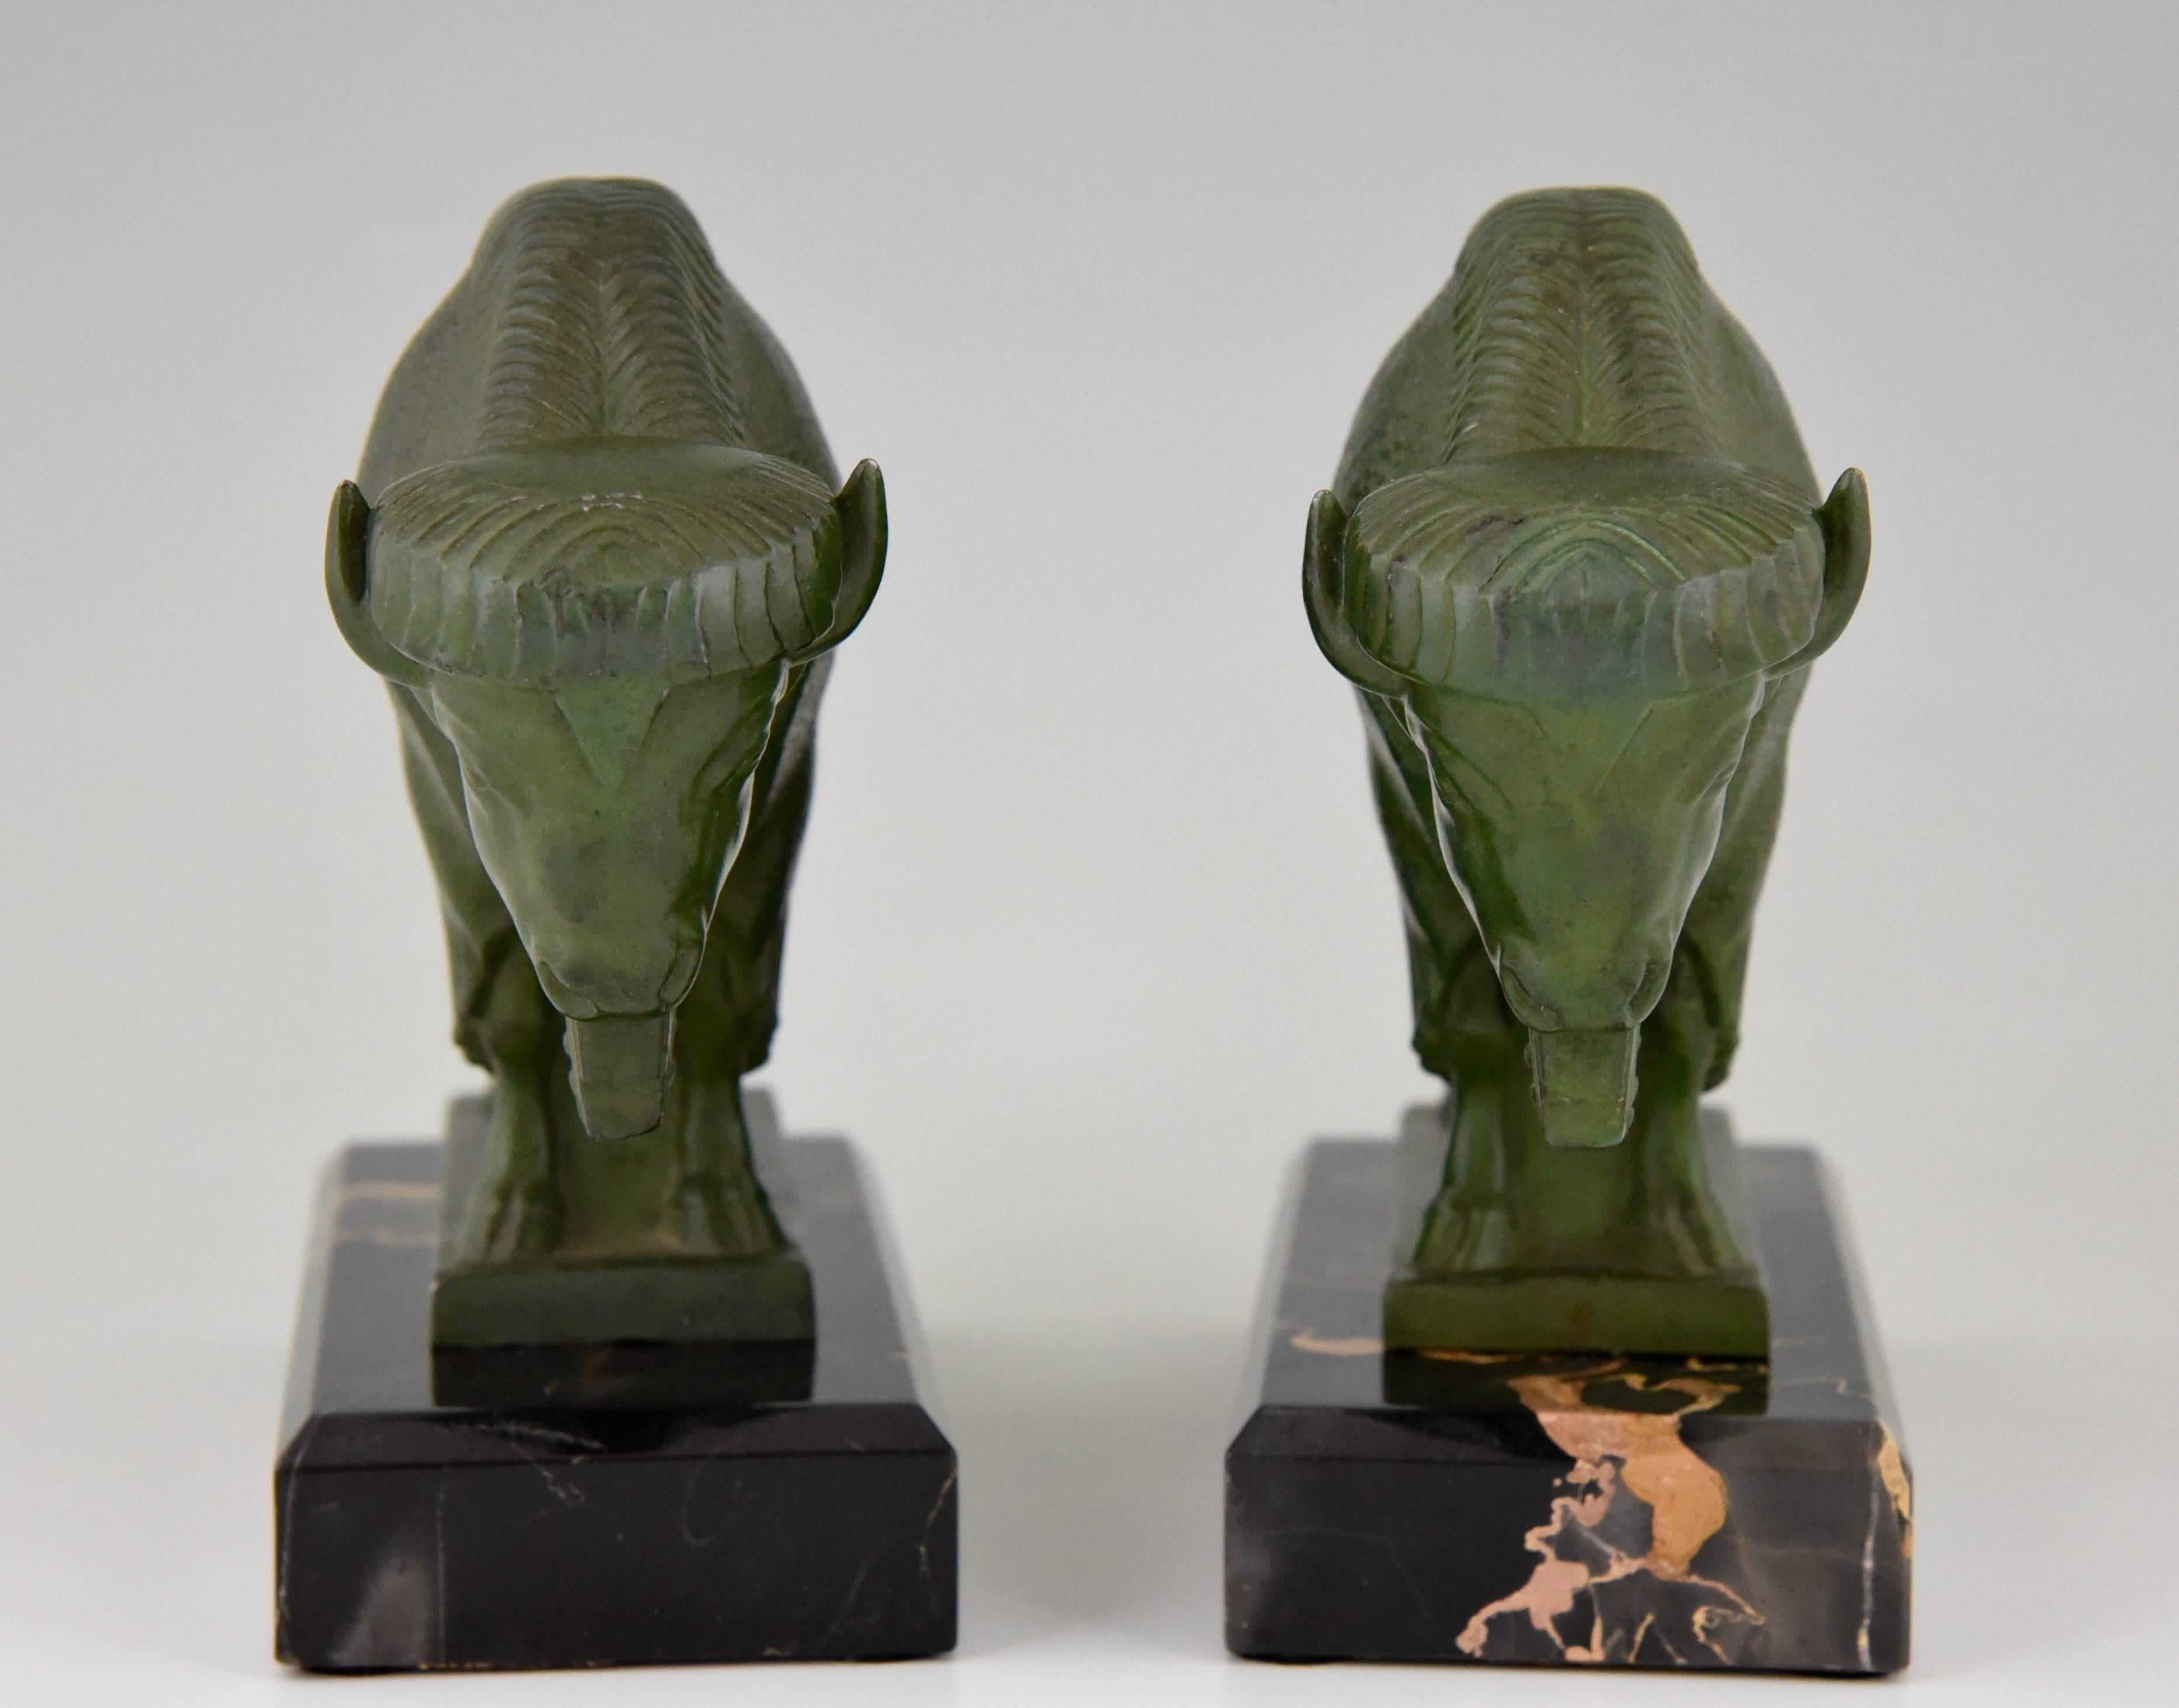 French Art Deco Bison Bookends By Max Le Verrier 1930 At 1stdibs